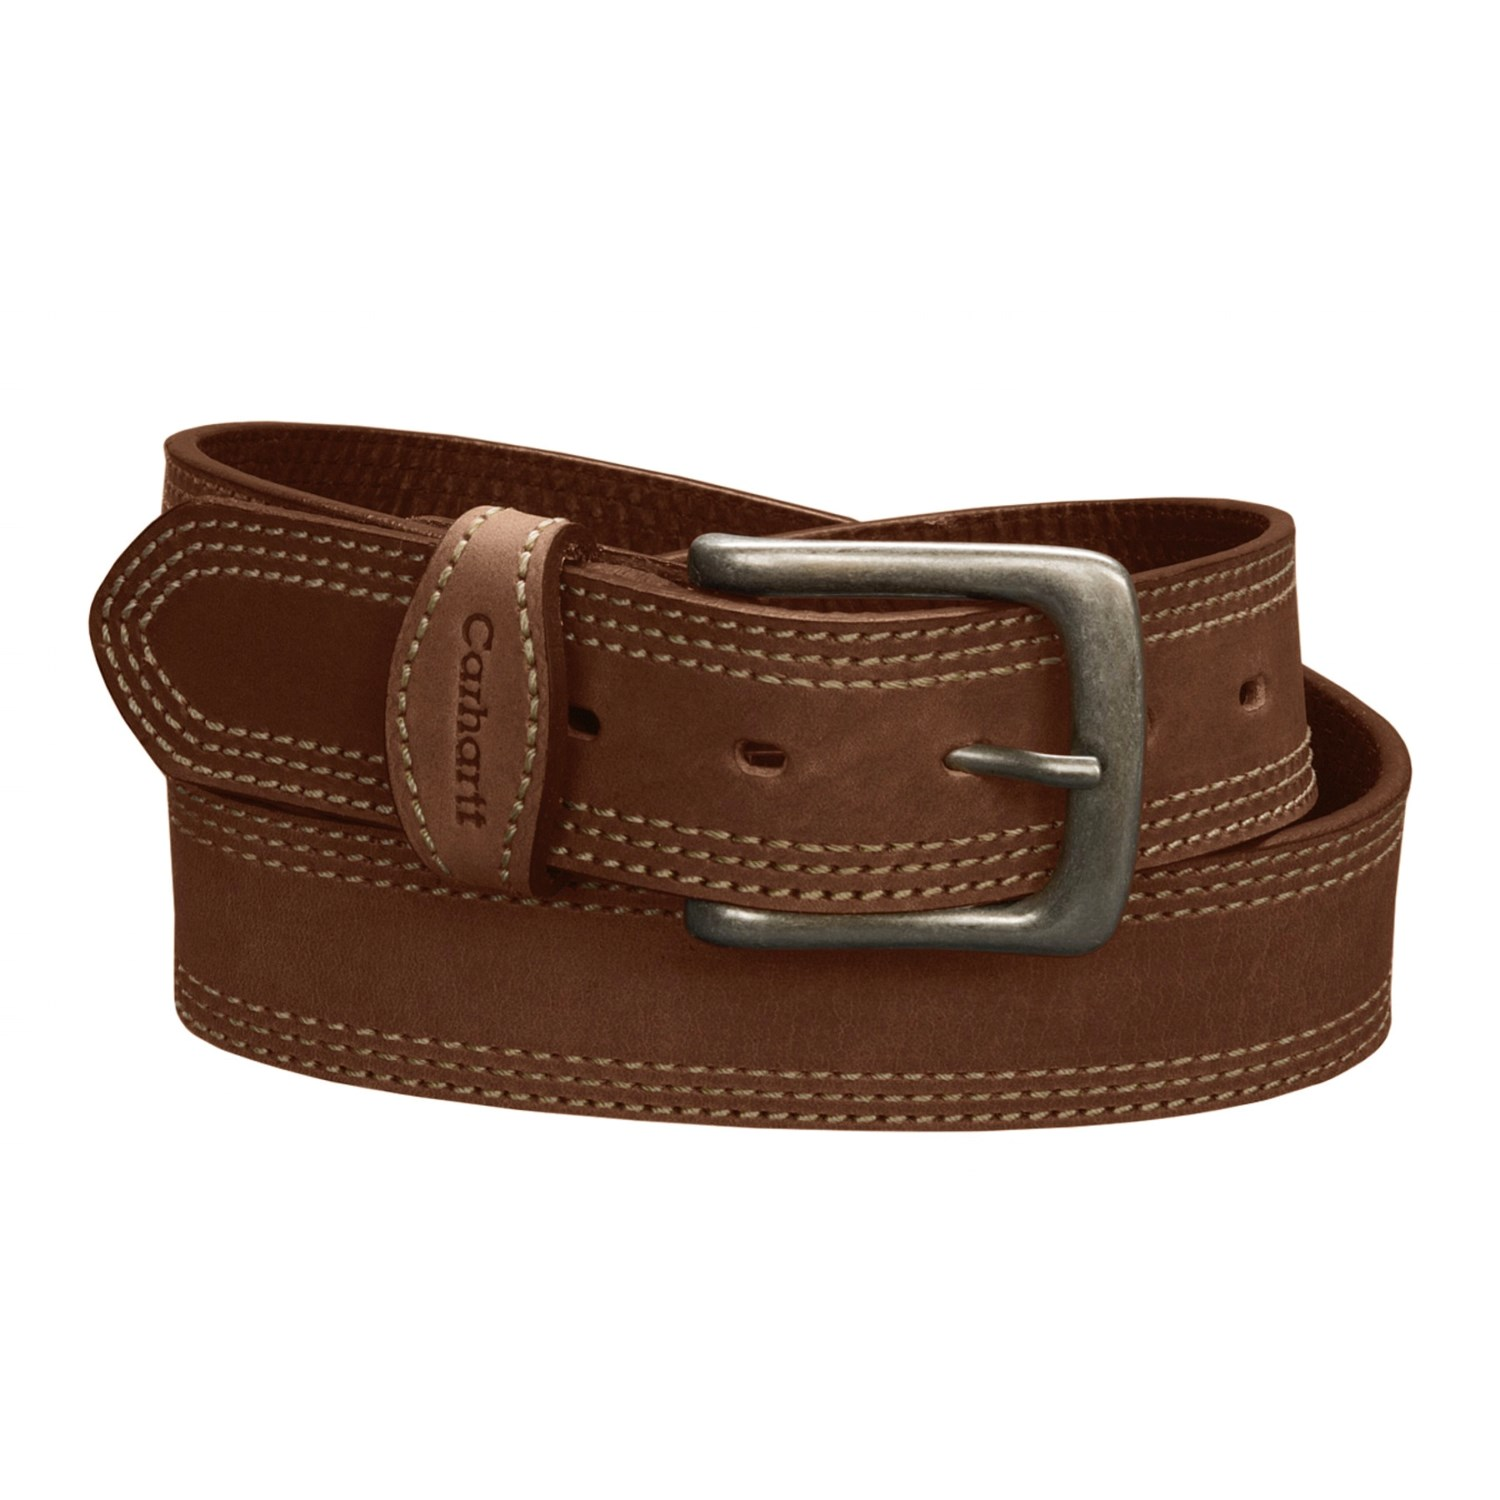 Men's American made leather work belts. Made to last. Our leather belts get better with time.